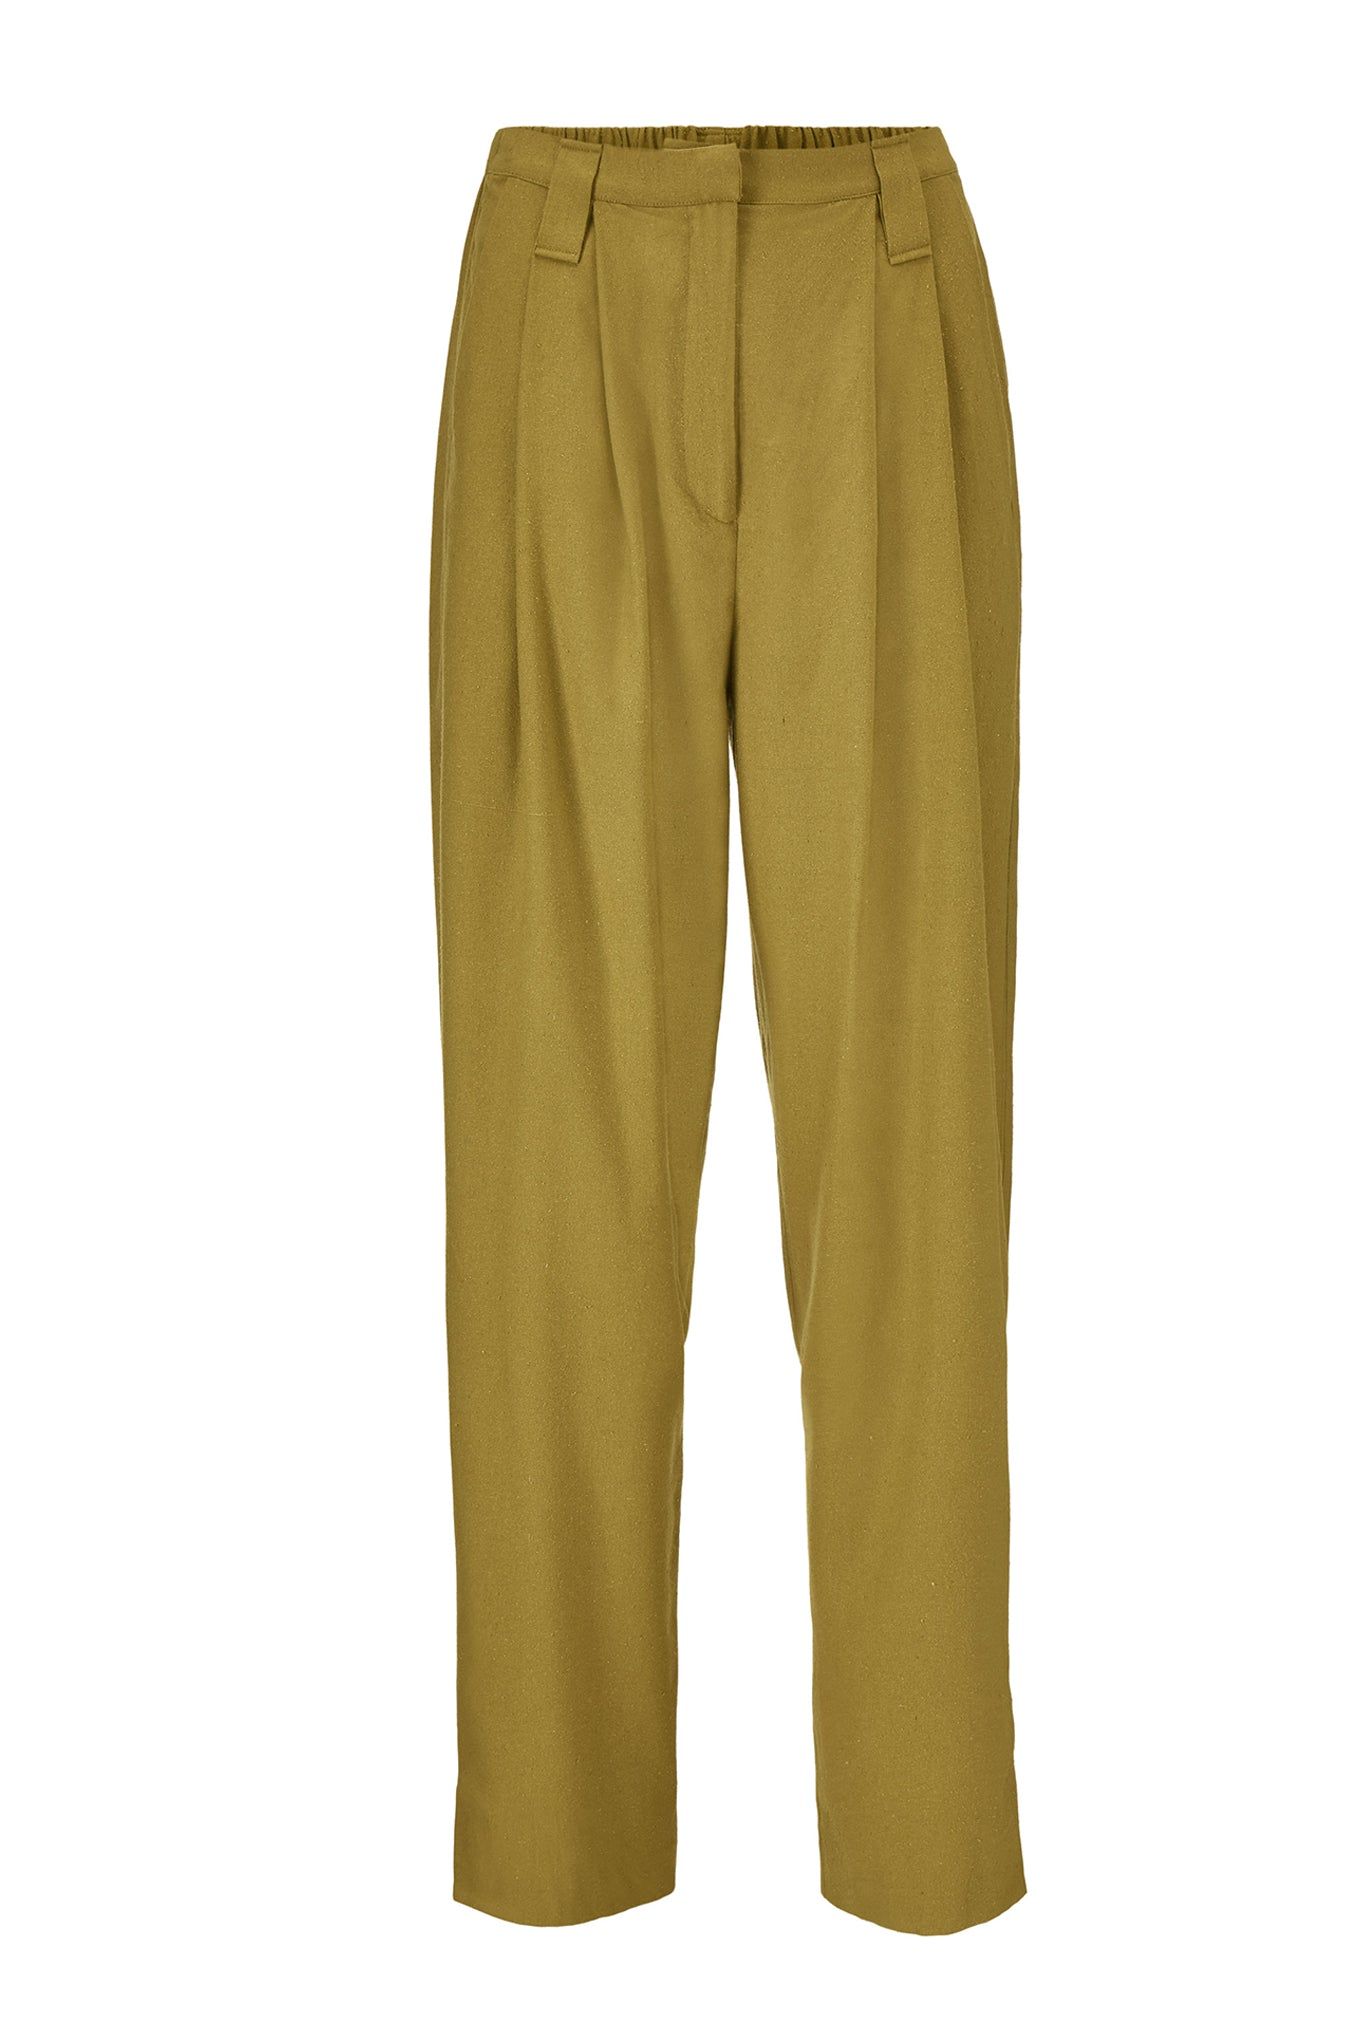 HARRY PANTS - PICKLE GREEN - RAW SILK